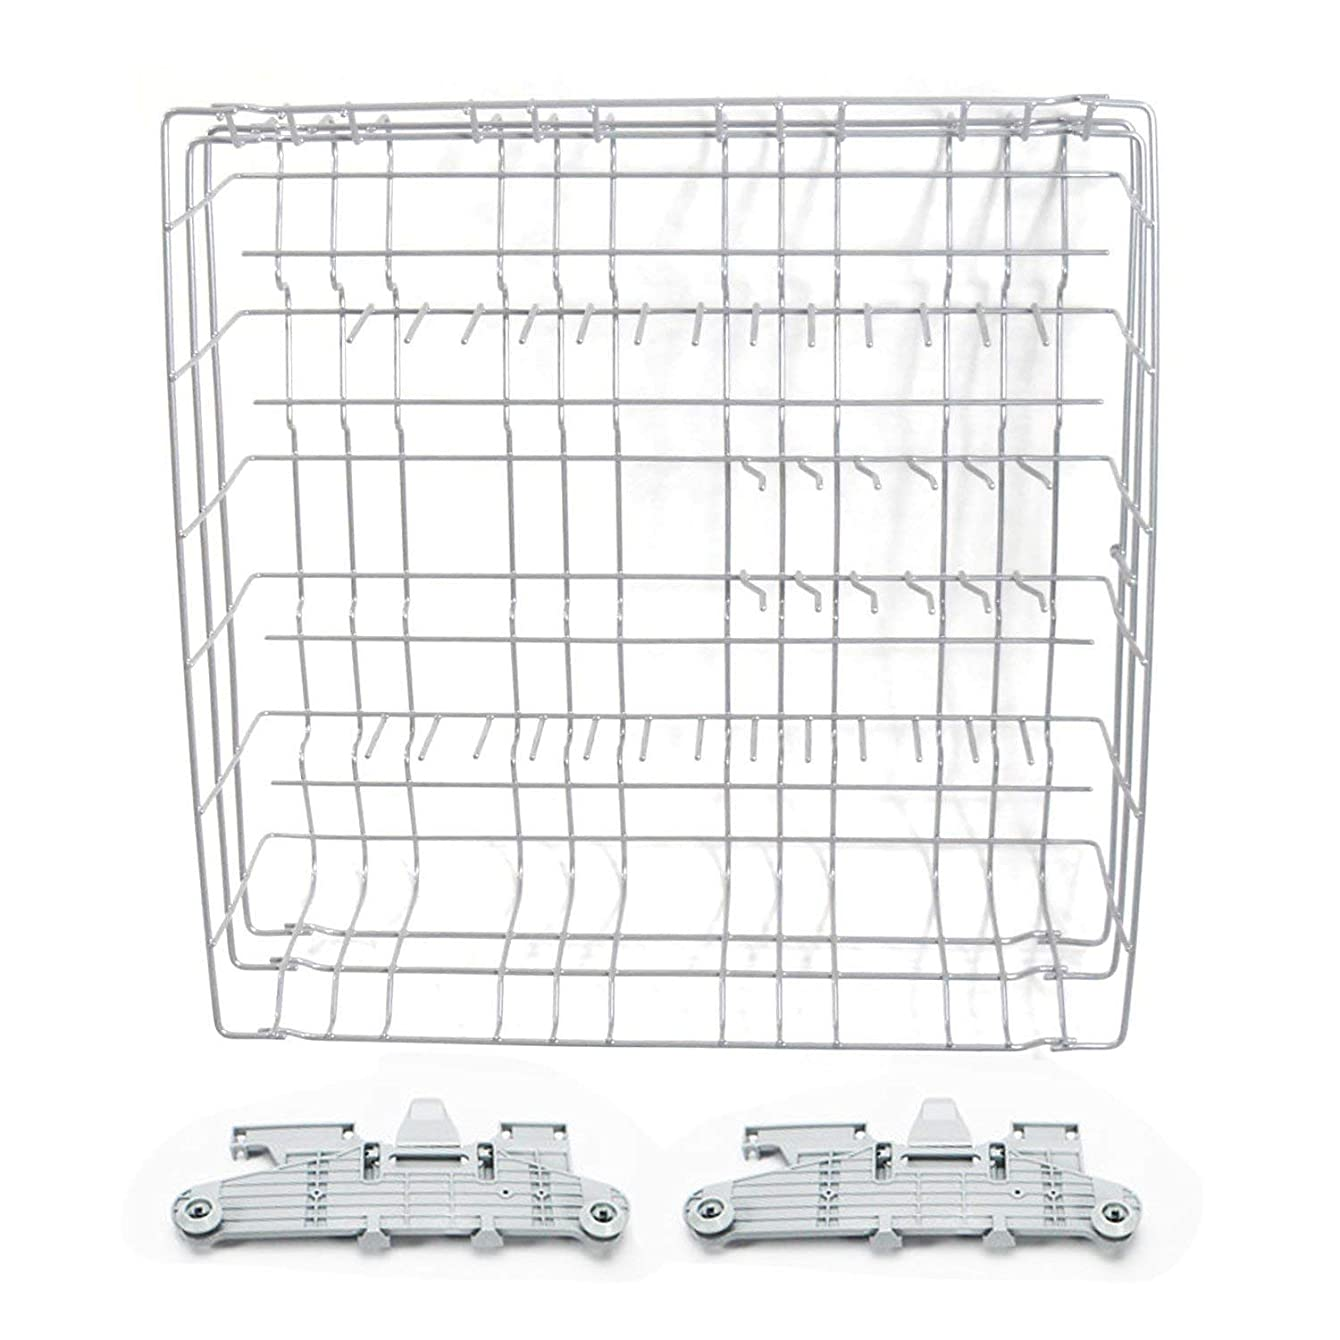 Global Products Dishwasher Upper Dishrack Assembly Compatible with Frigidaire A01986801